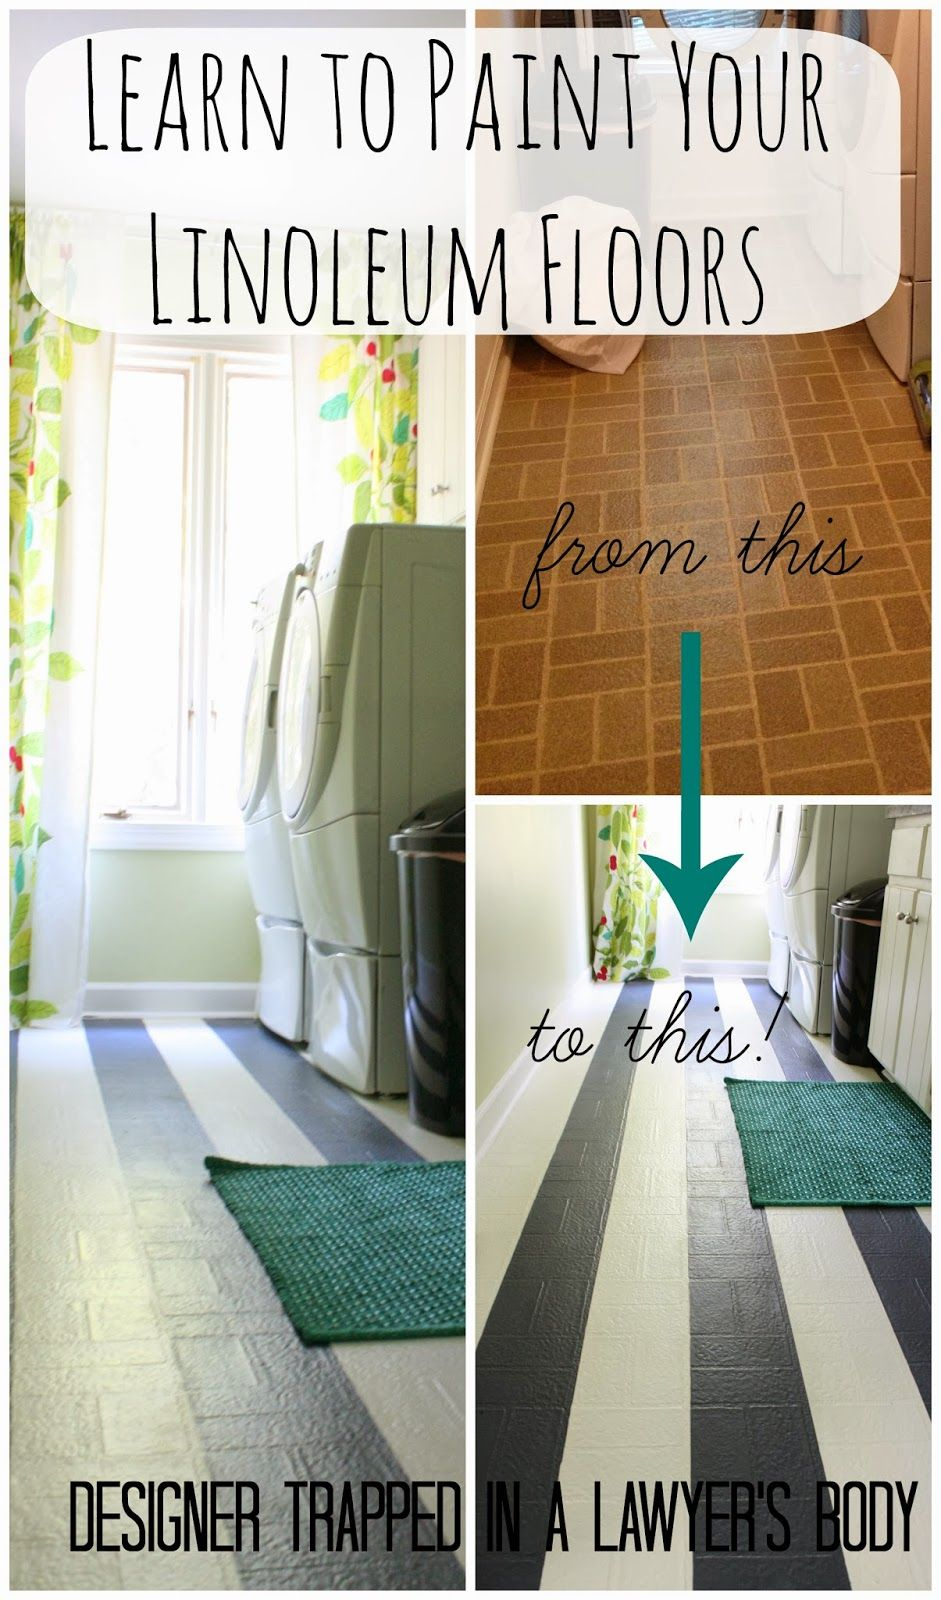 Designer Trapped in a Lawyer's Body: How to Paint Your Linoleum